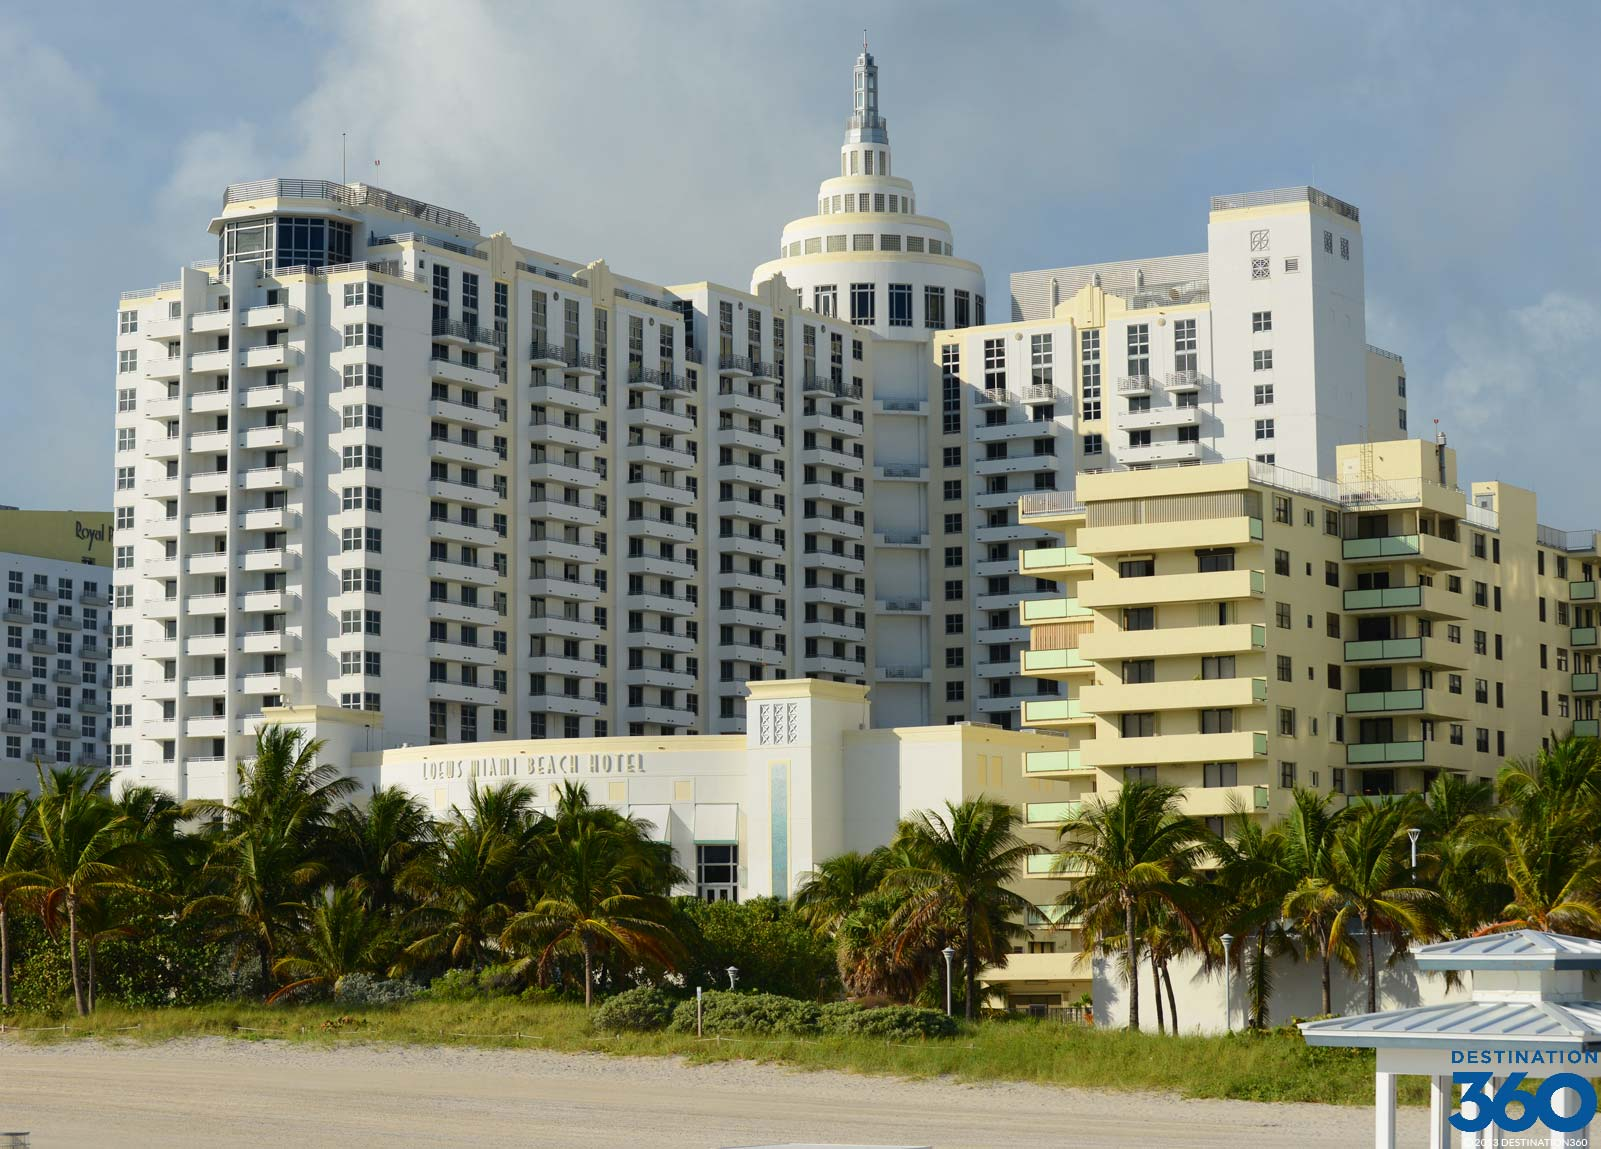 Mandarin Hotel South Beach